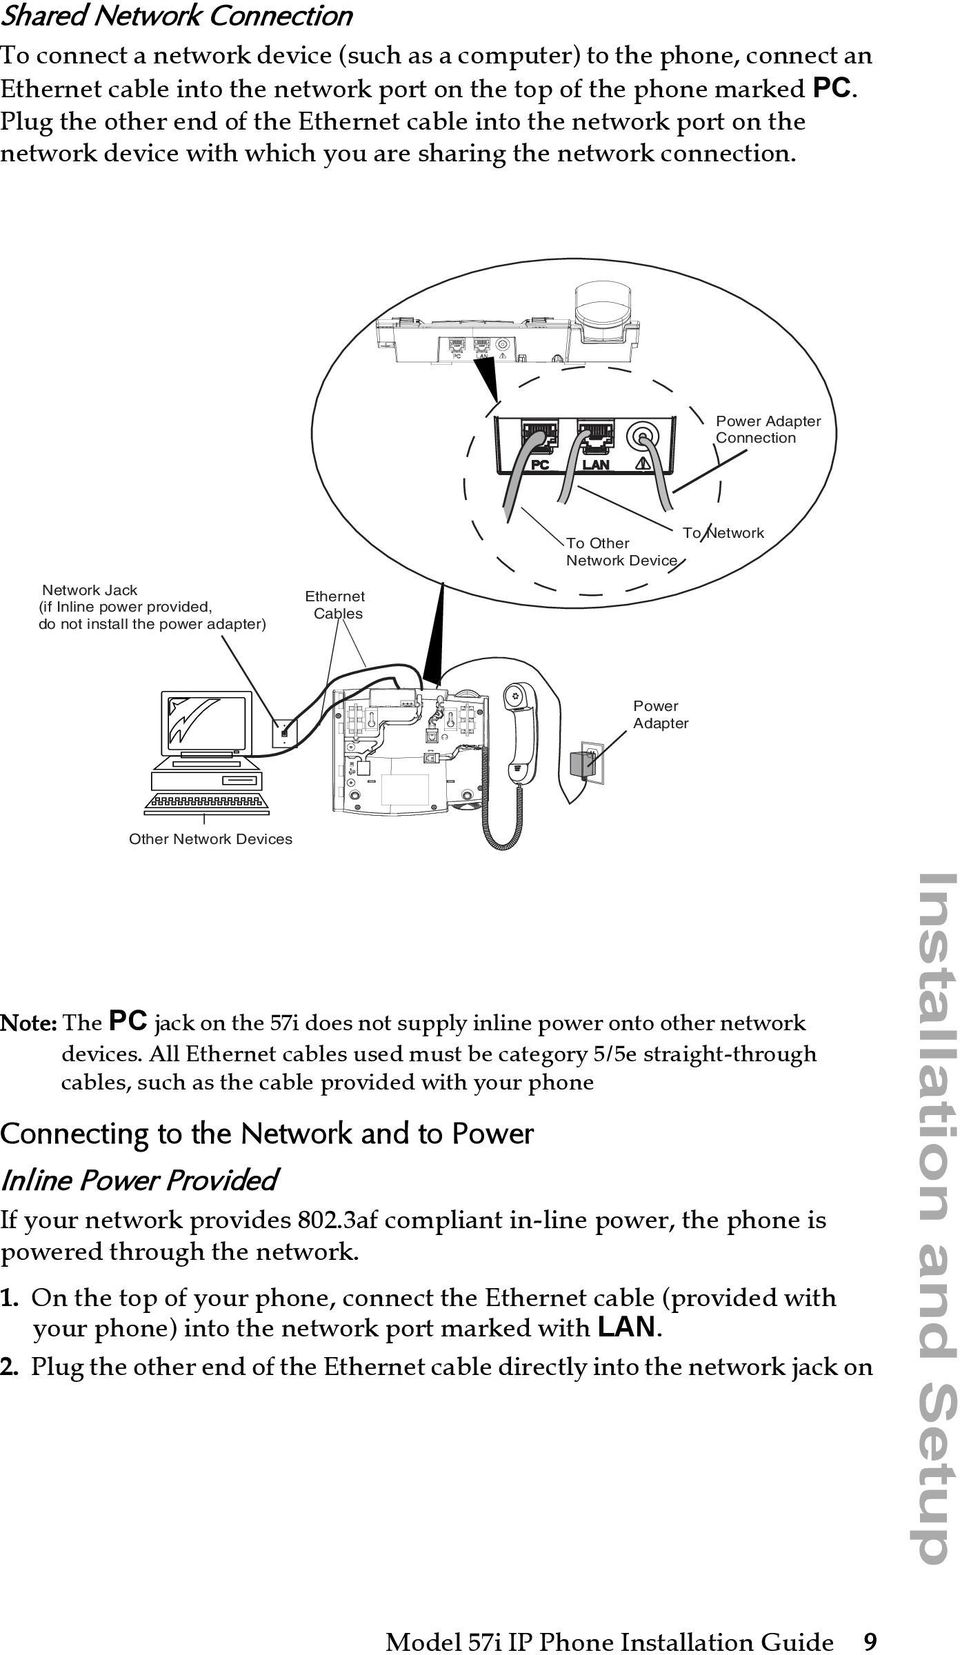 Power Adapter Connection To Network To Other Network Device Network Jack (if Inline power provided, do not install the power adapter) Ethernet Cables Power Adapter Other Network Devices Note: The PC